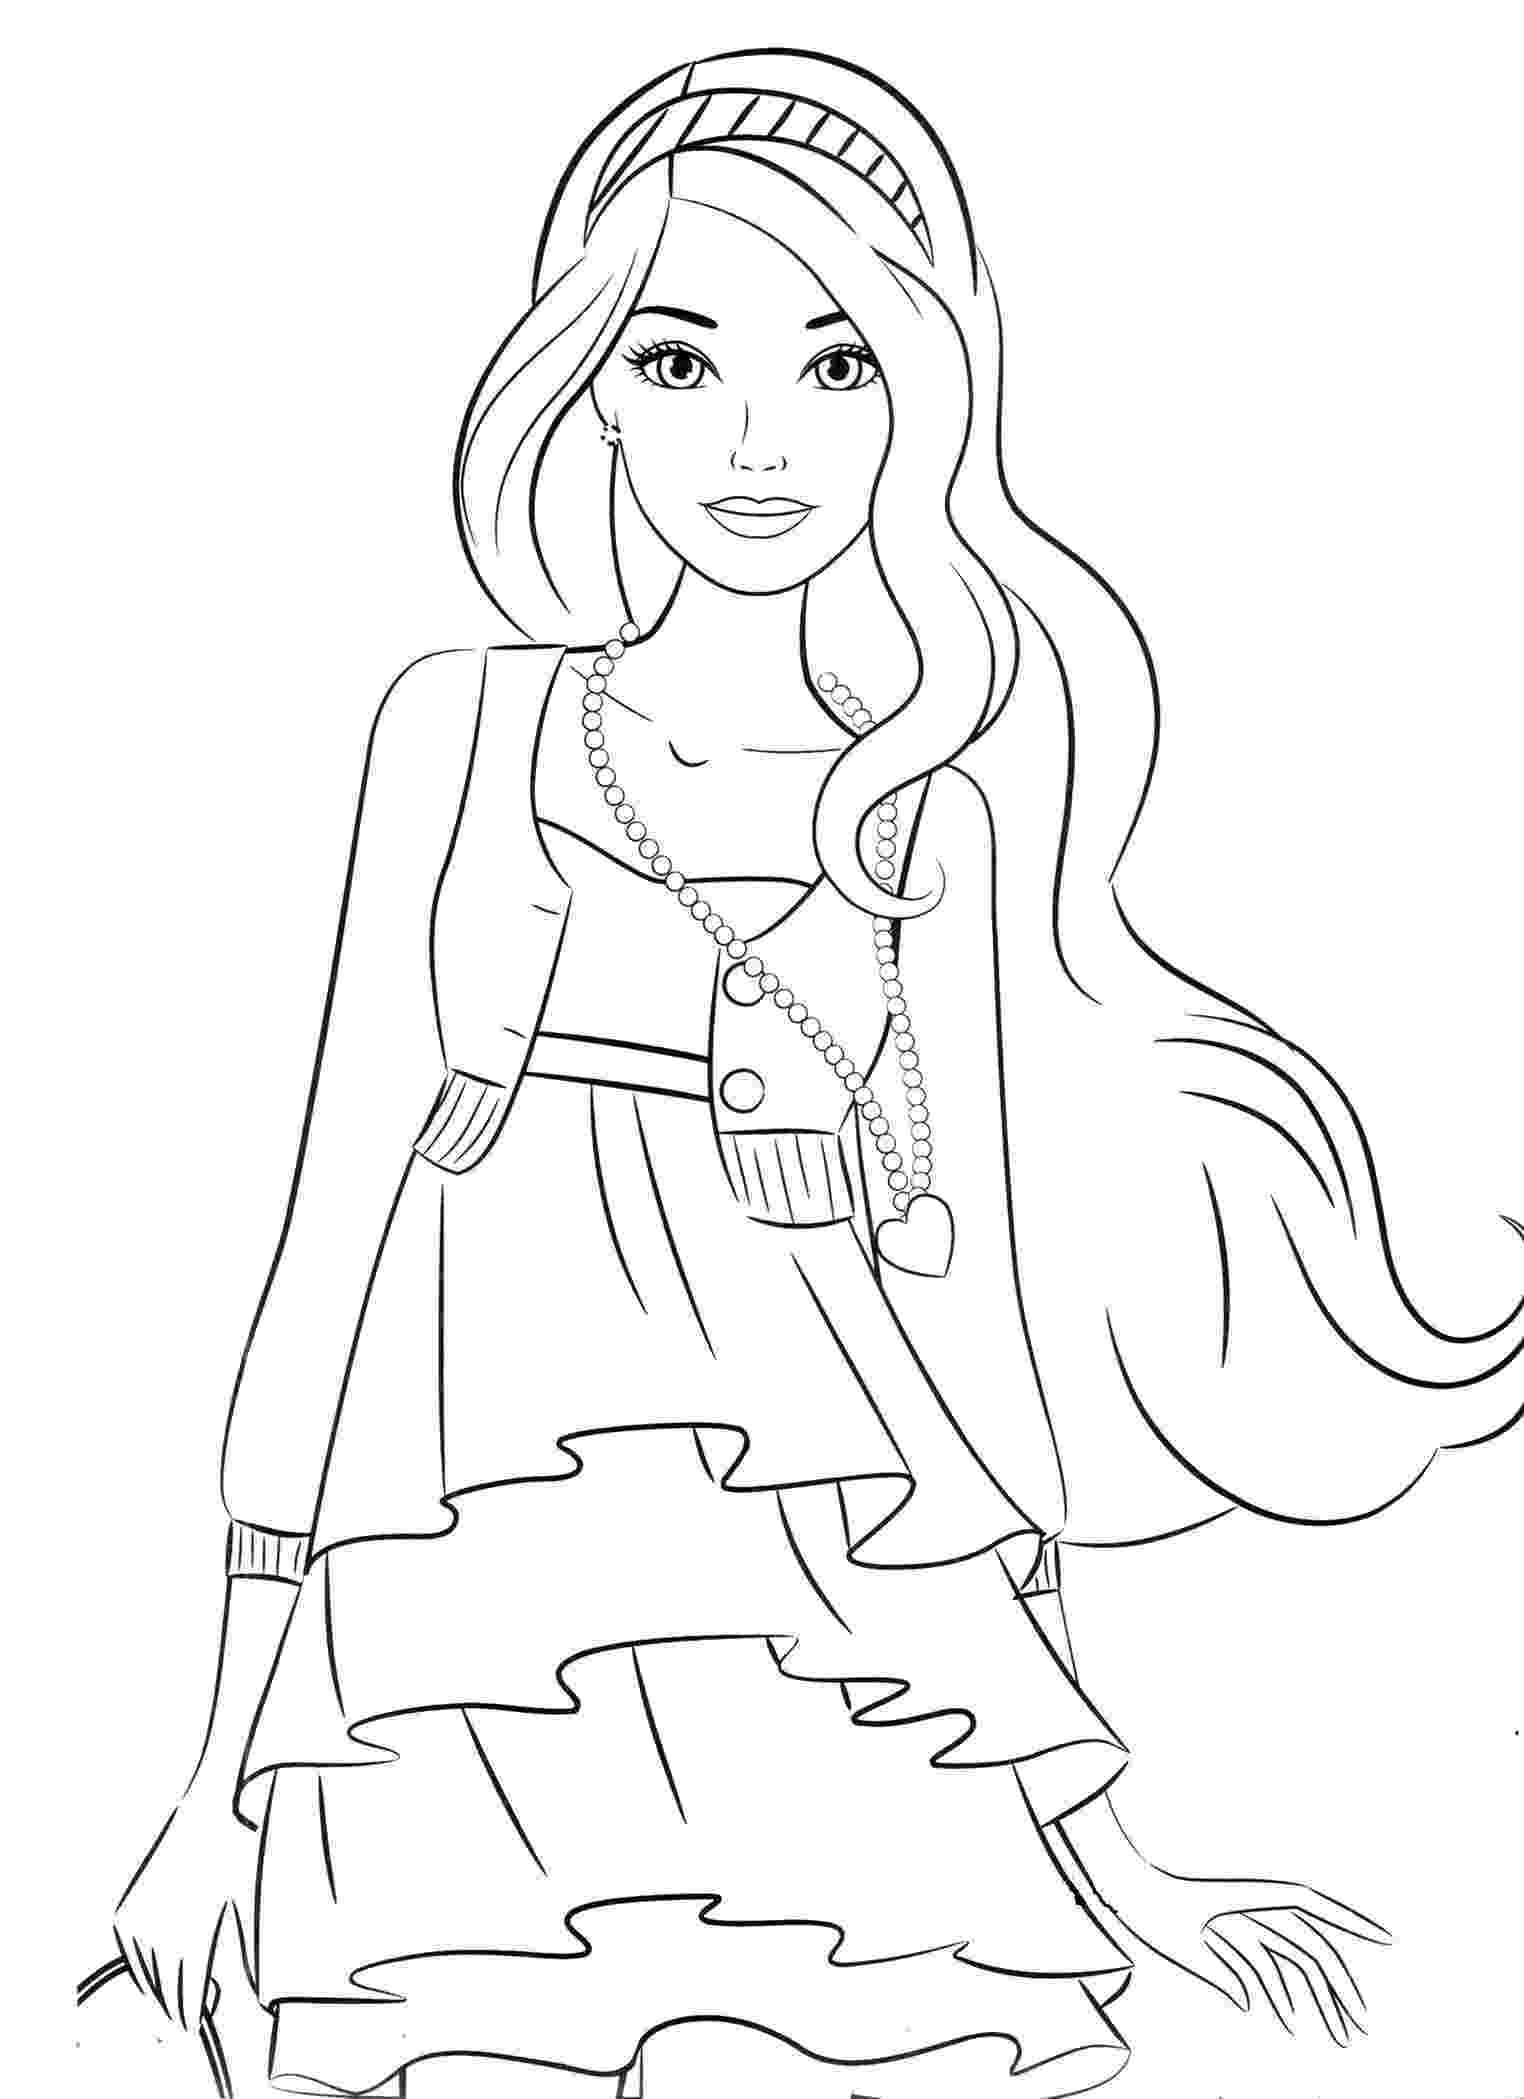 printing pages for girls digi stamp isabel39s bouquet pretty girl coloring page girls for pages printing